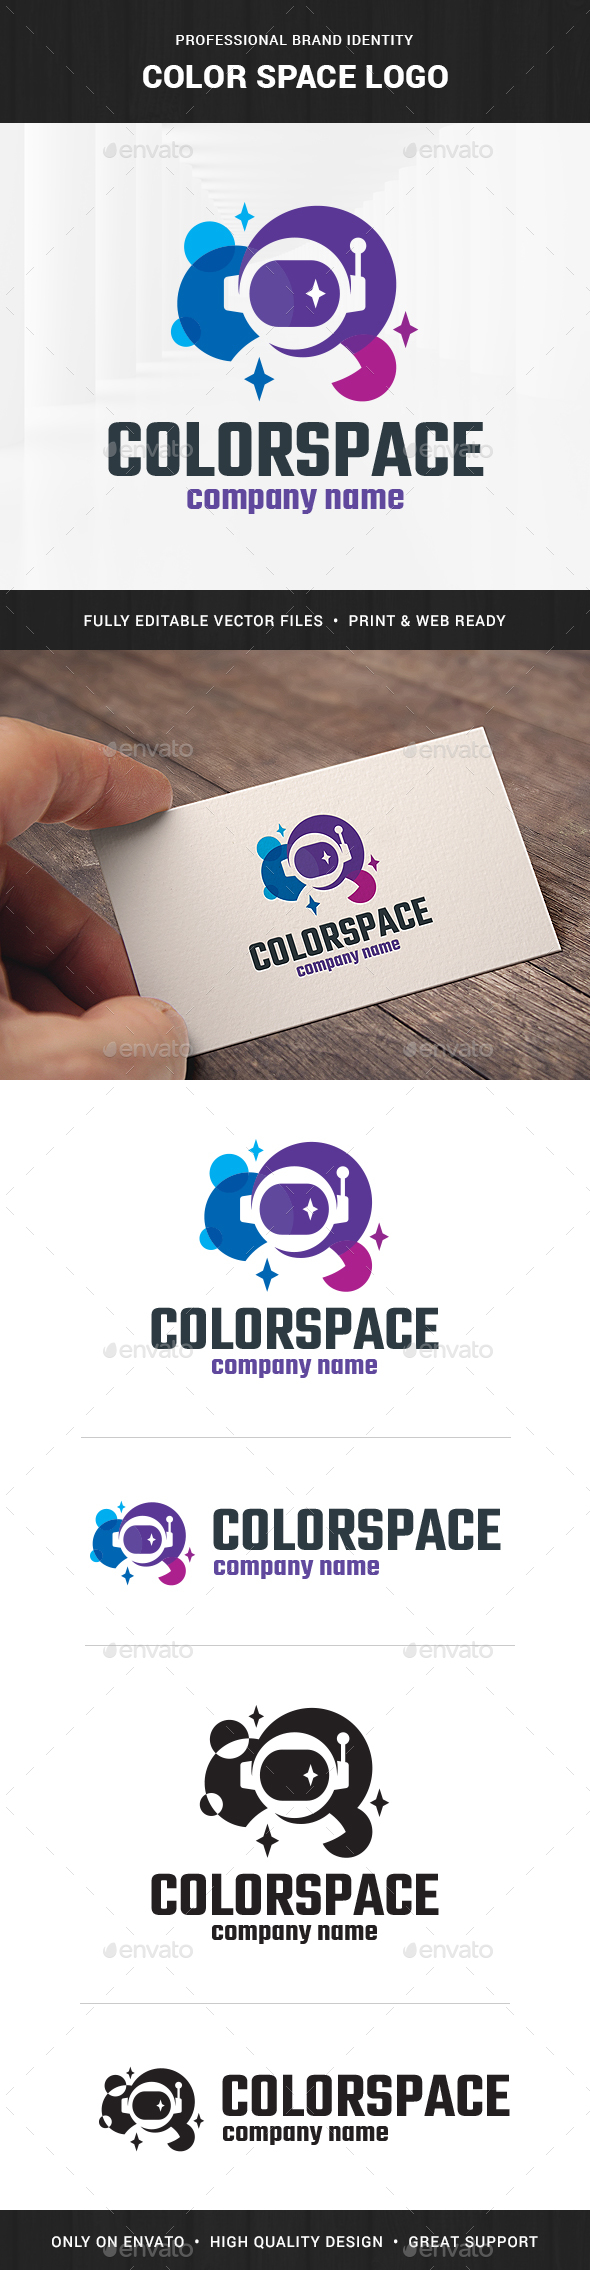 Color Space Logo Template - Objects Logo Templates